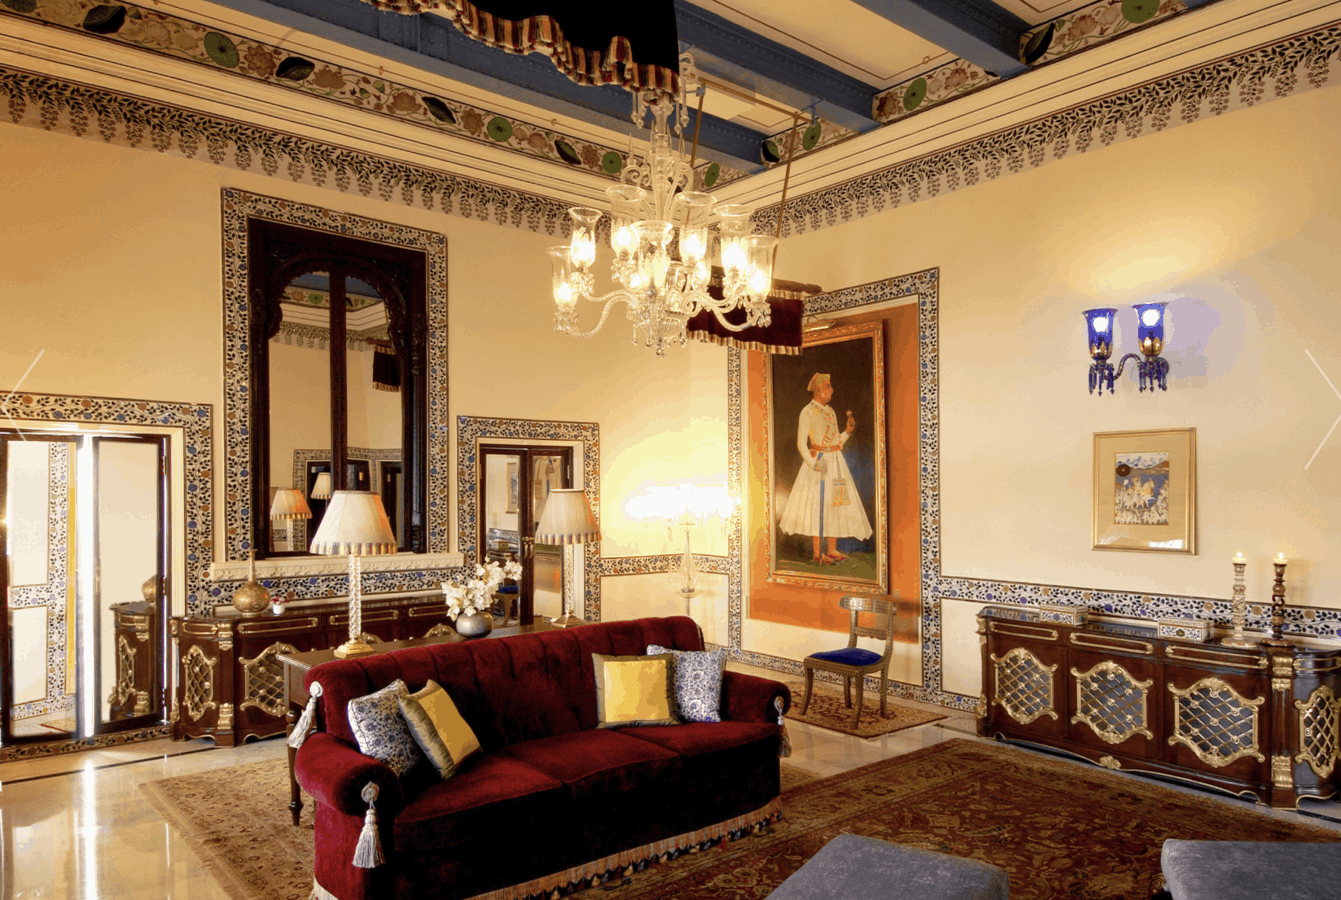 Photo of a suite interior at the Lake Palace Udaipur a restored floating palace.